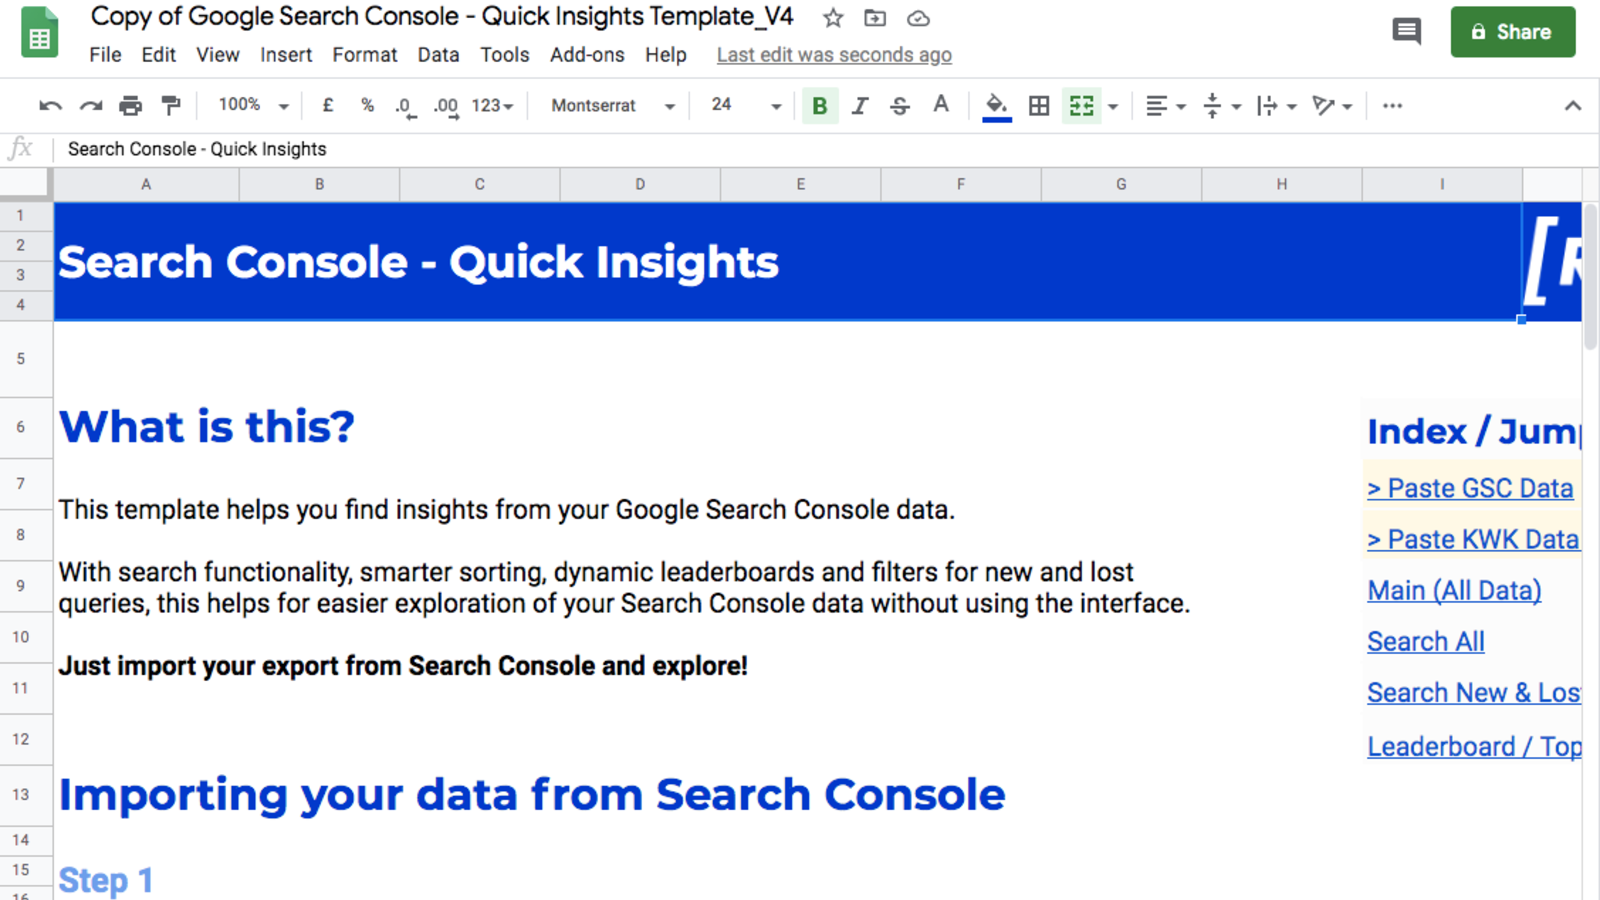 Google Search Console Quick Insights